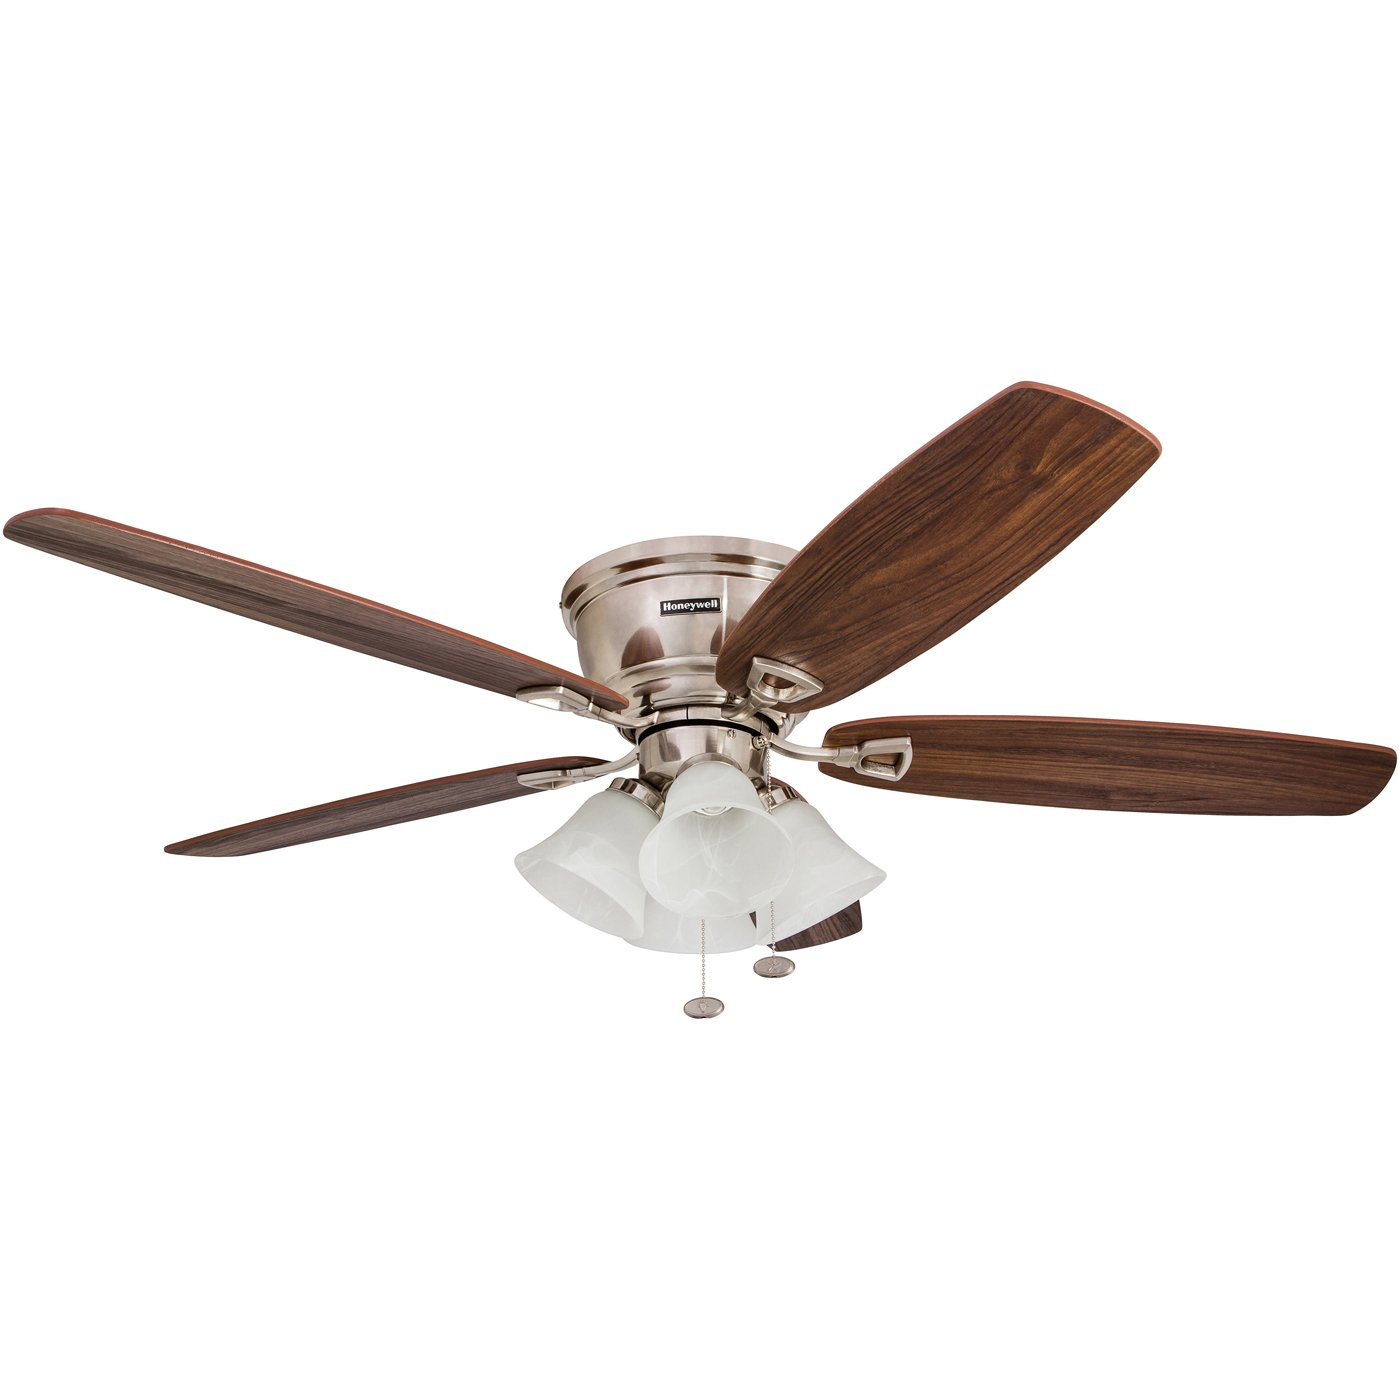 Honeywell Glen Alden 52-Inch Ceiling Fan with 4 Frosted Swirled Glass Shades, Hugger/Flush Mount, Low Profile, Five Reversible Cimarron/Walnut Blades, Brushed Nickel